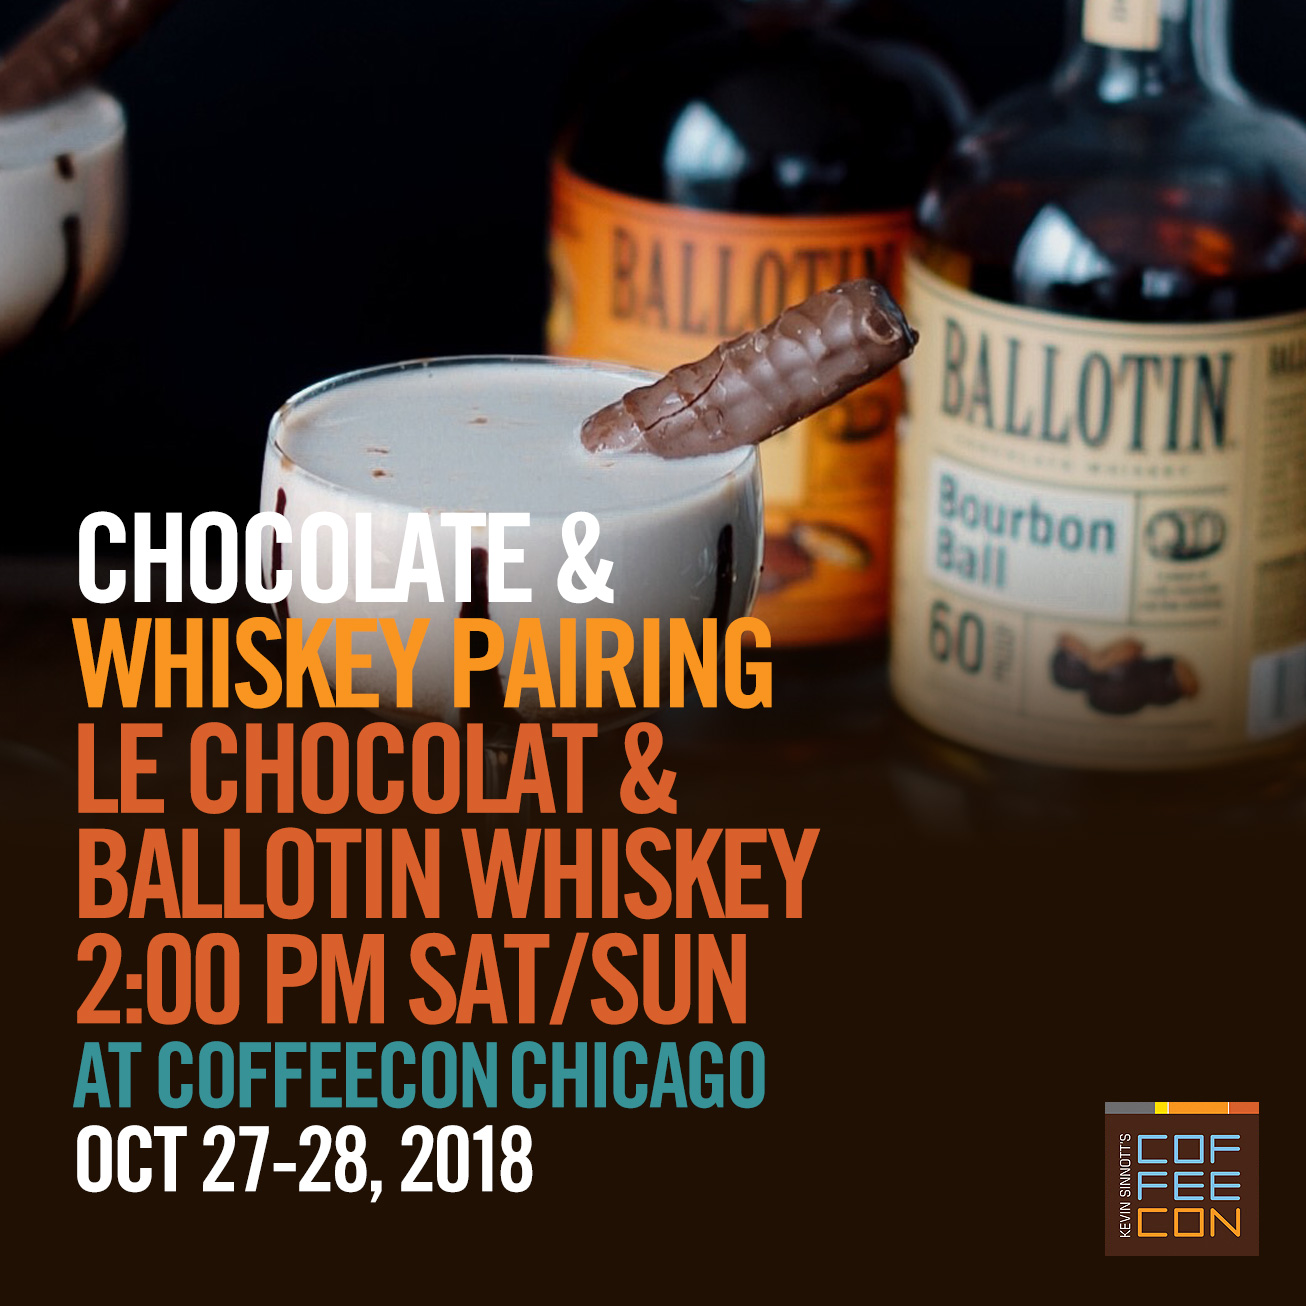 Chocolate and Whiskey Pairing at CoffeeConChicago 2018